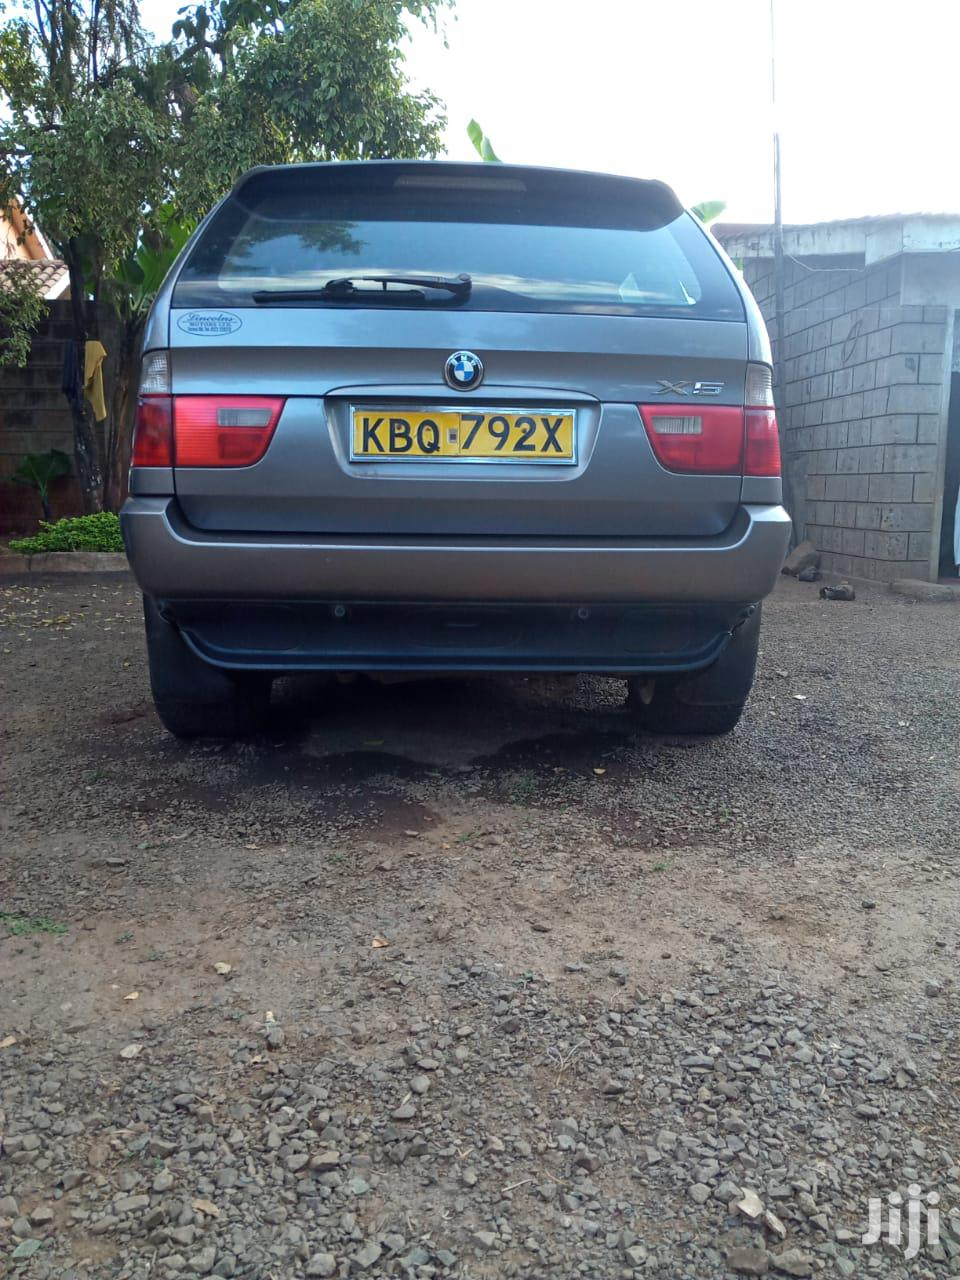 BMW X5 2005 Gray | Cars for sale in Ruiru, Kiambu, Kenya